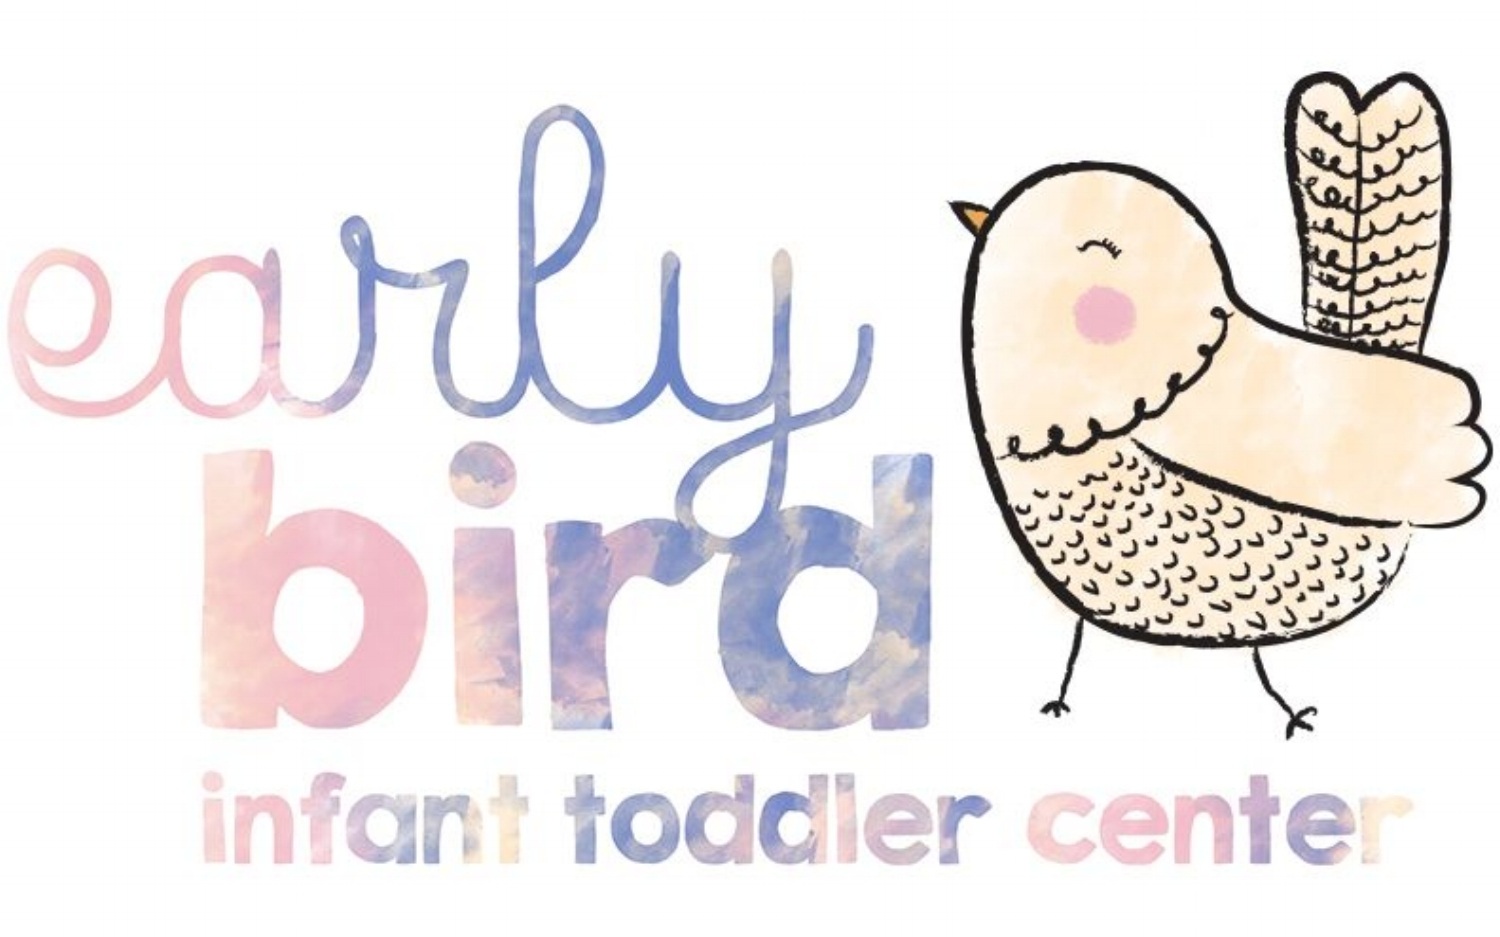 Early Bird Infant Toddler Center